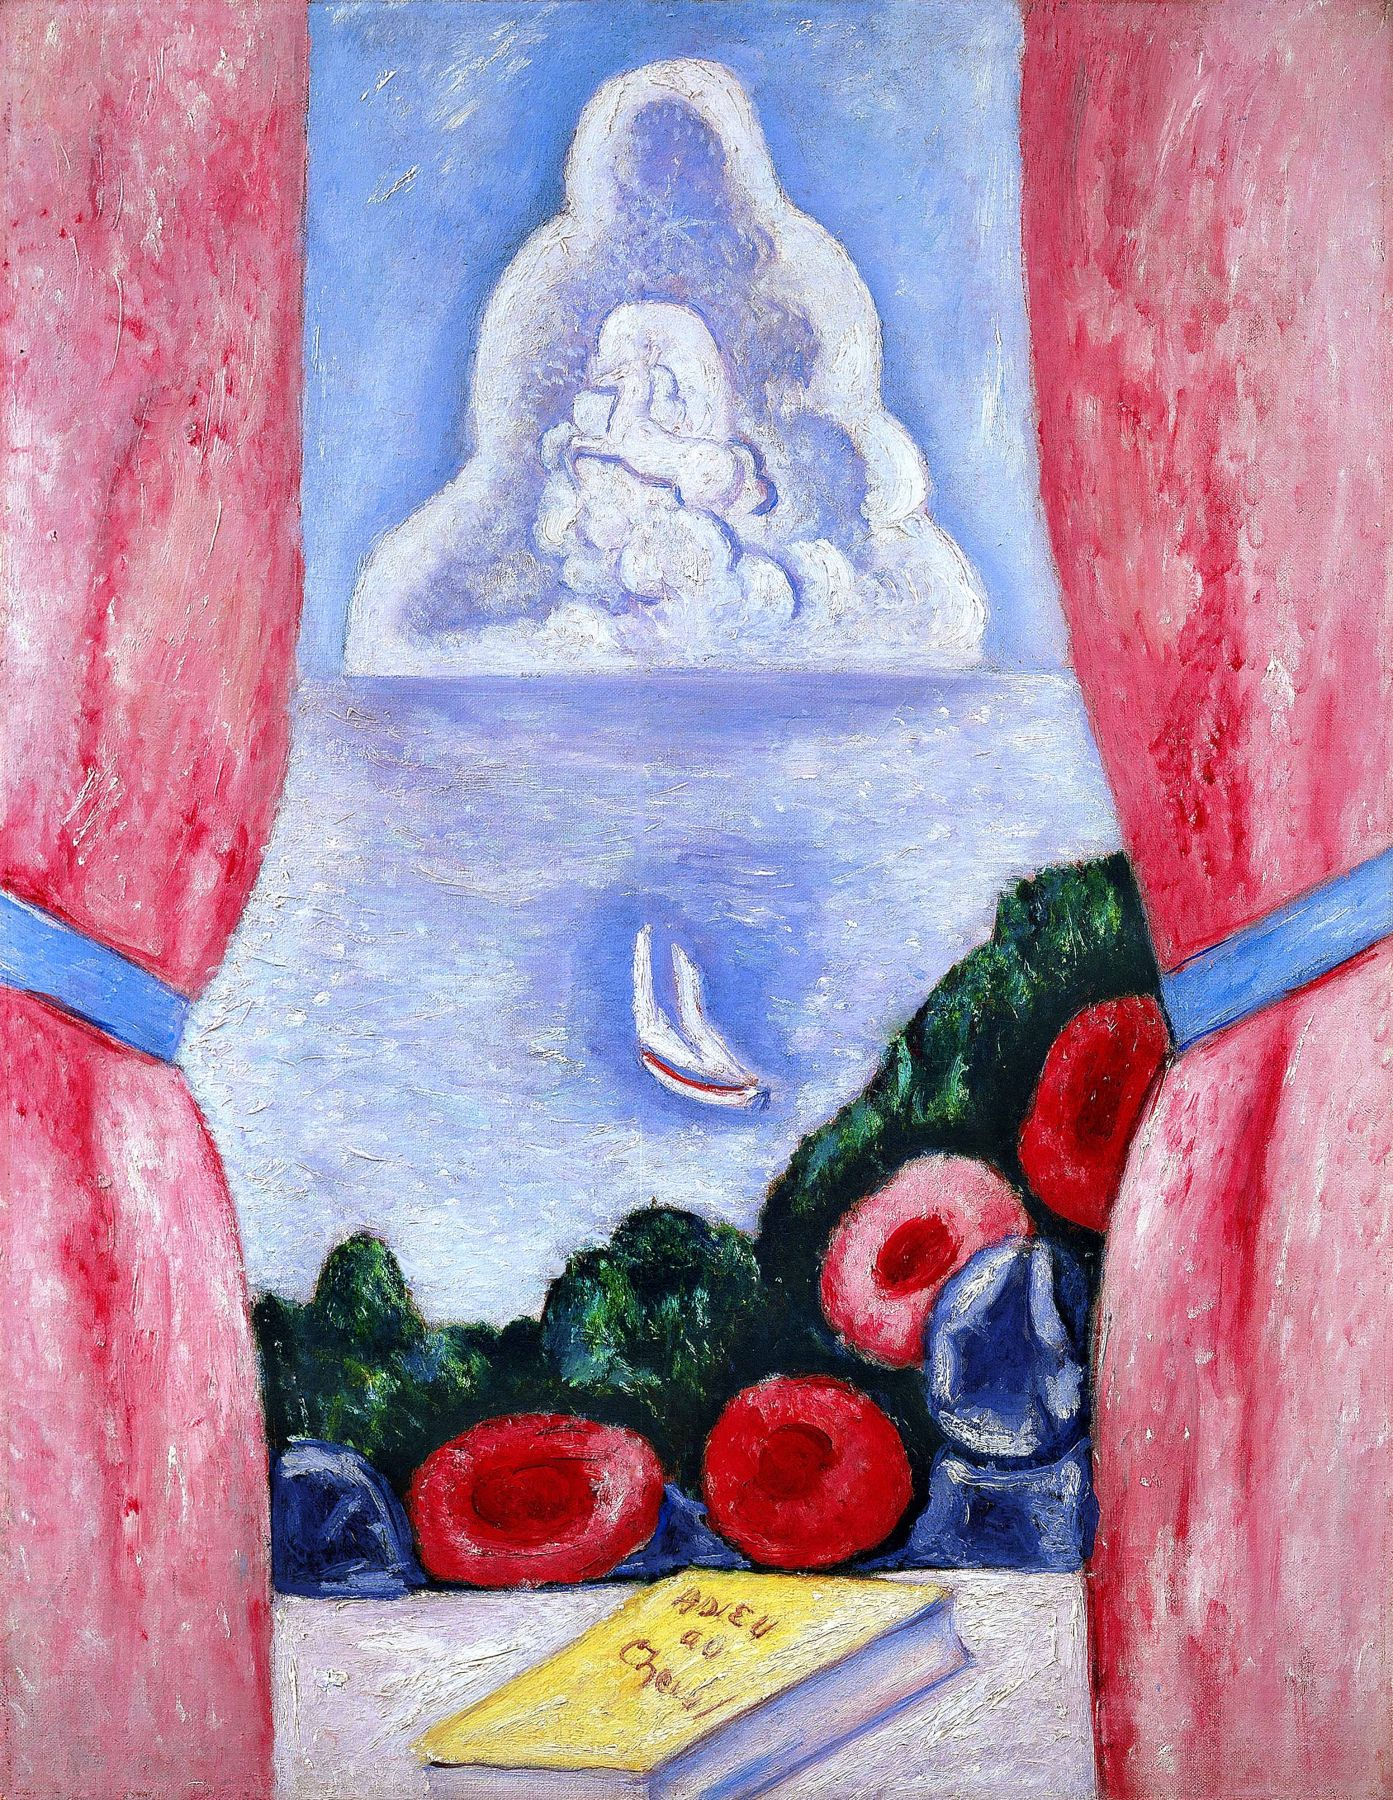 marsden hartley, View from a Window, c. 1935-36, oil on canvas board, 24 x 18 inches